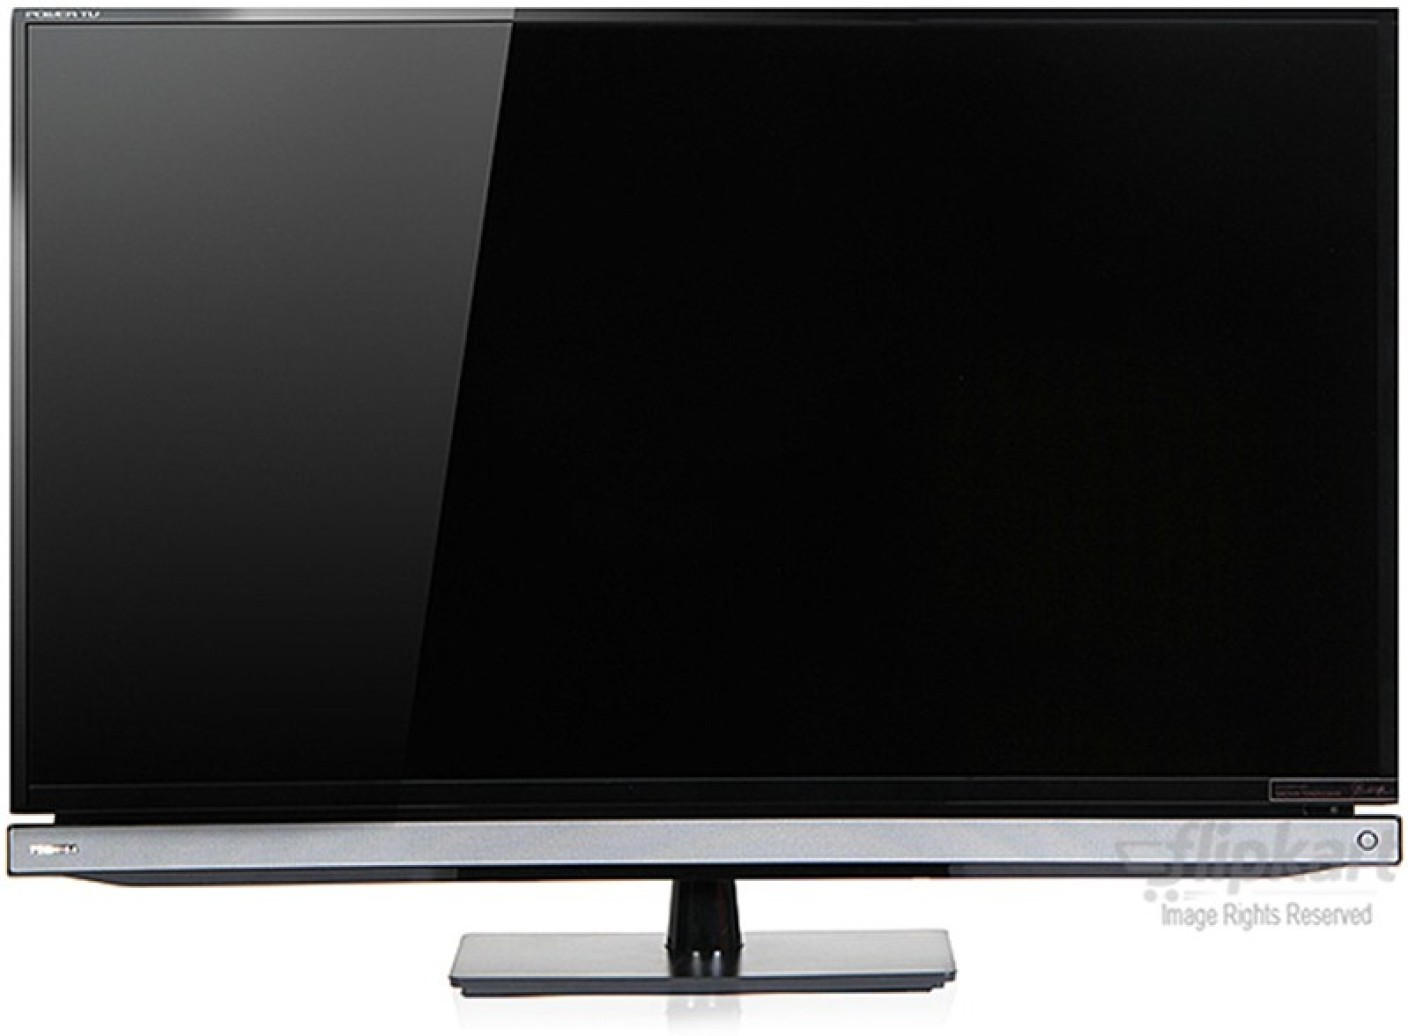 toshiba 99 cm 39 inch full hd led tv online at best prices in india. Black Bedroom Furniture Sets. Home Design Ideas